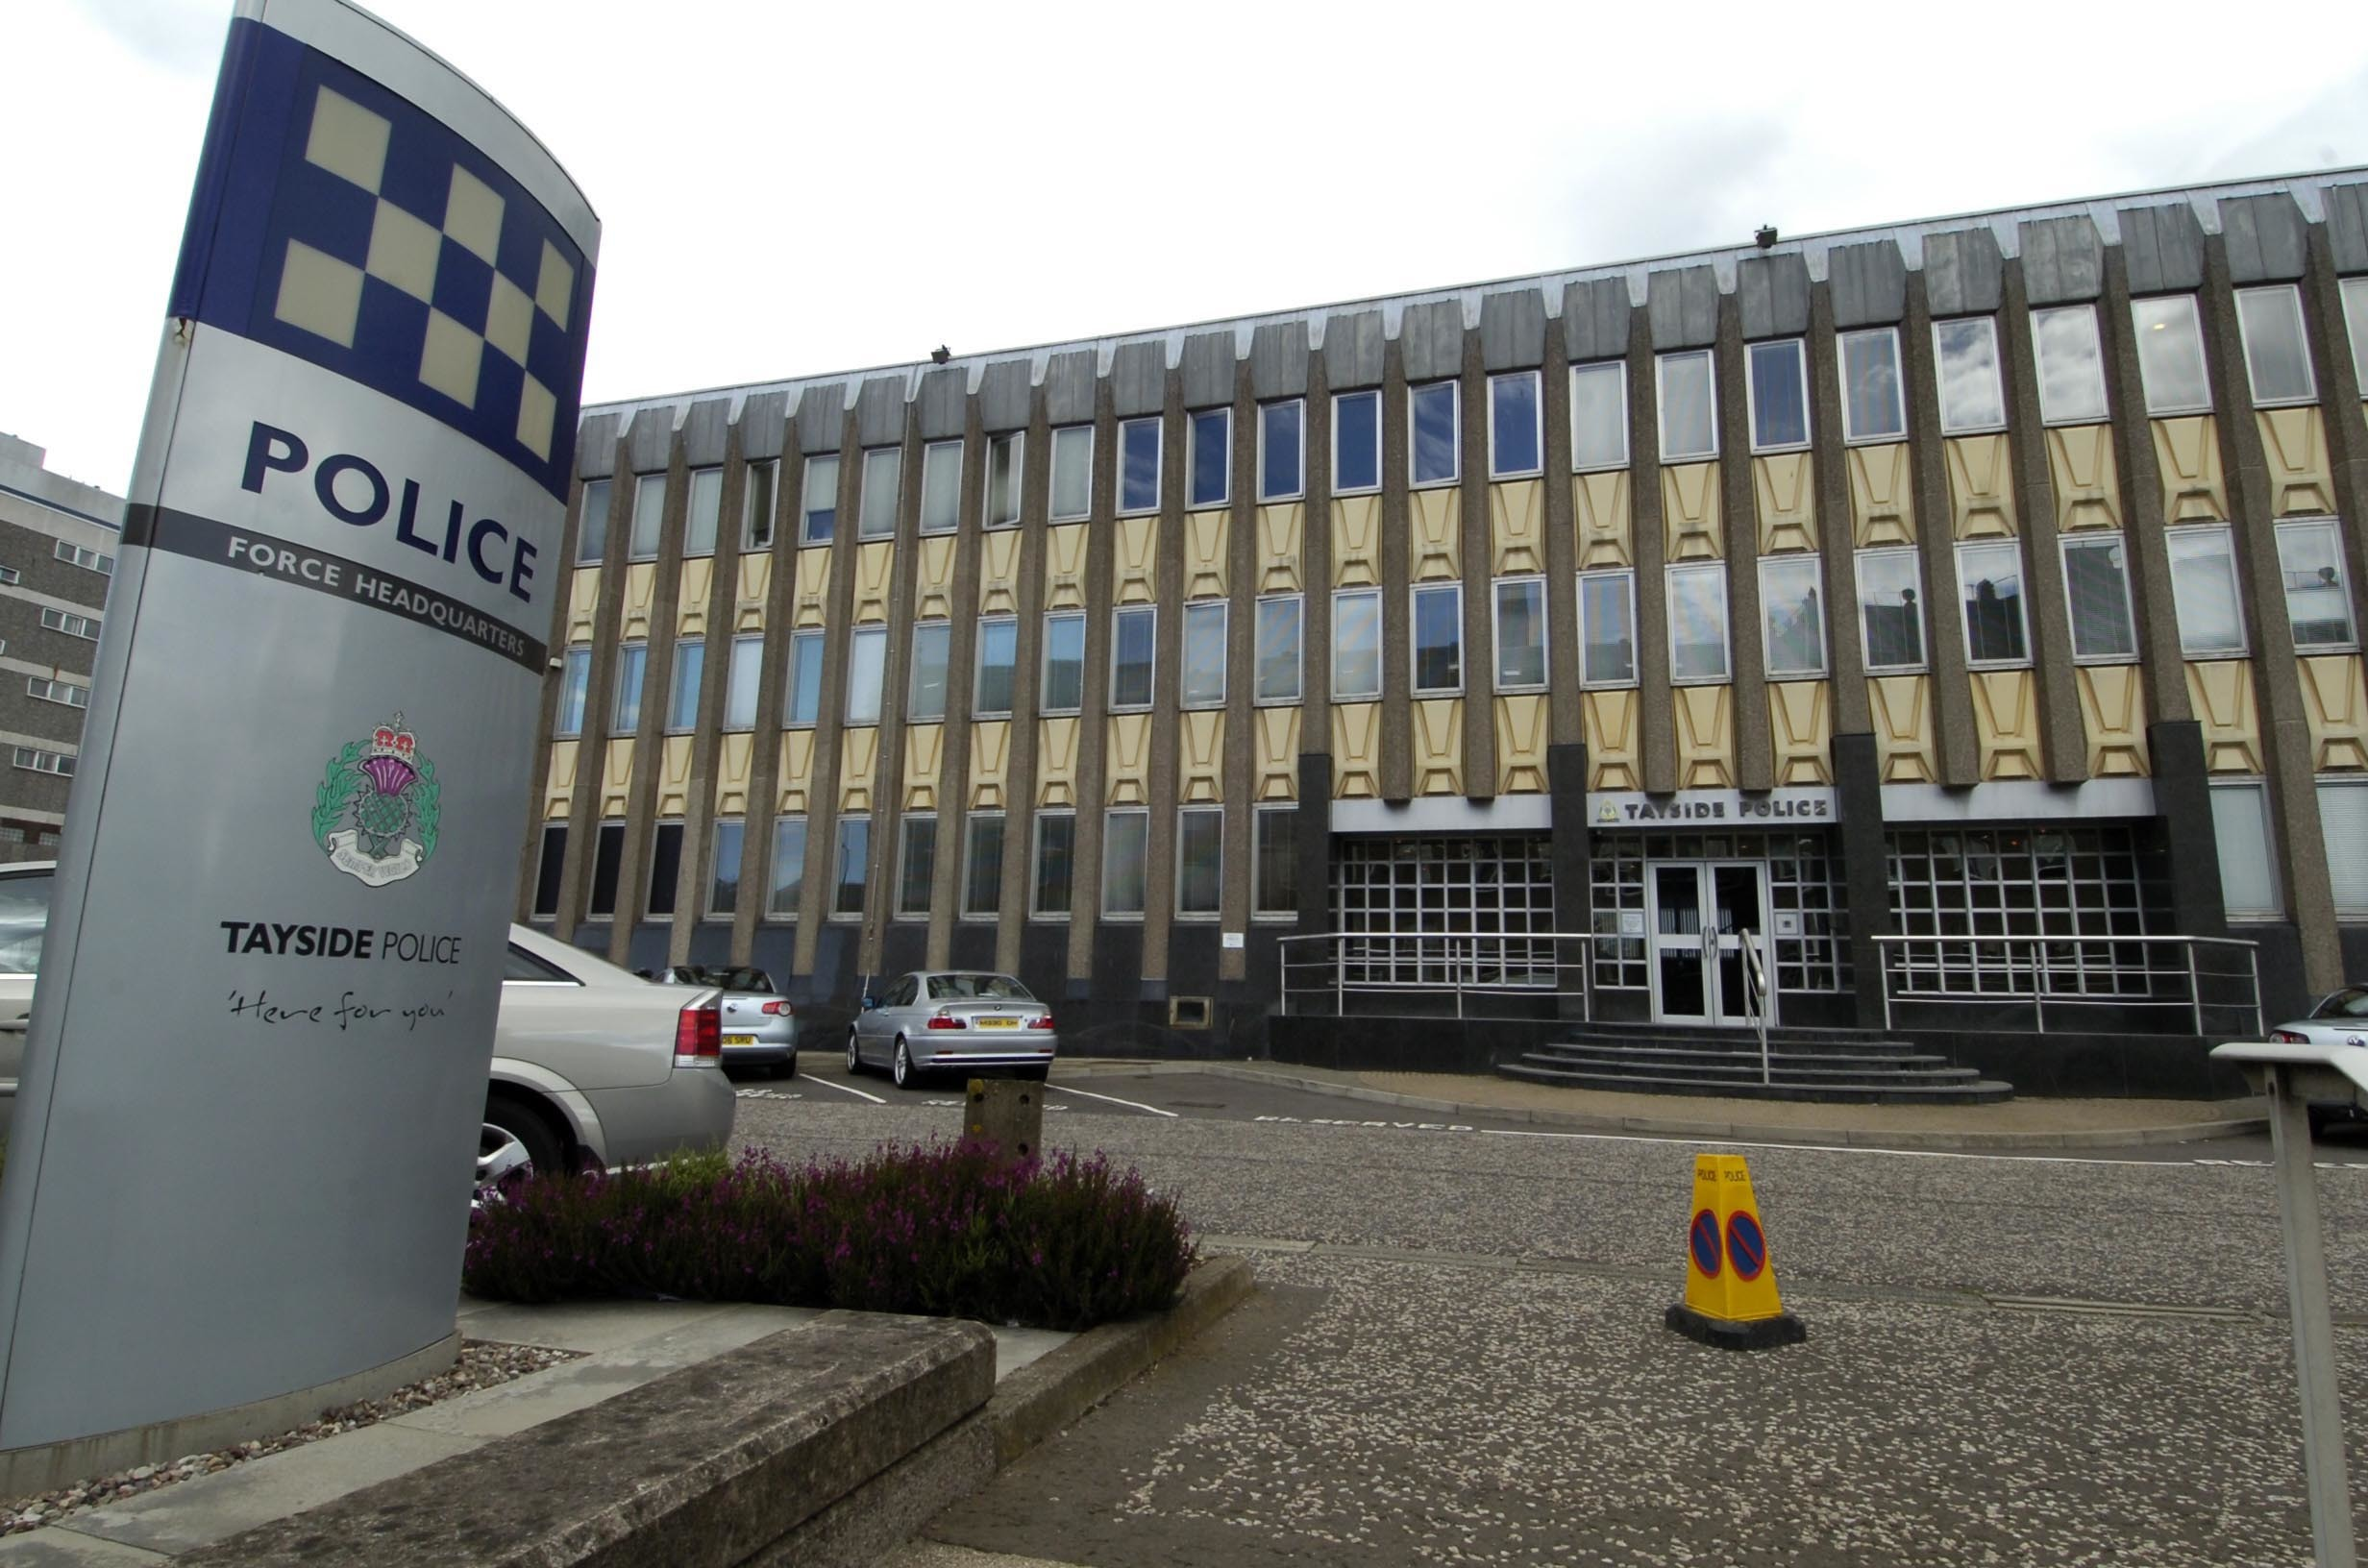 Police Scotland officers in Tayside needed 23.8% more sick days in 2015/16 compared to the previous year